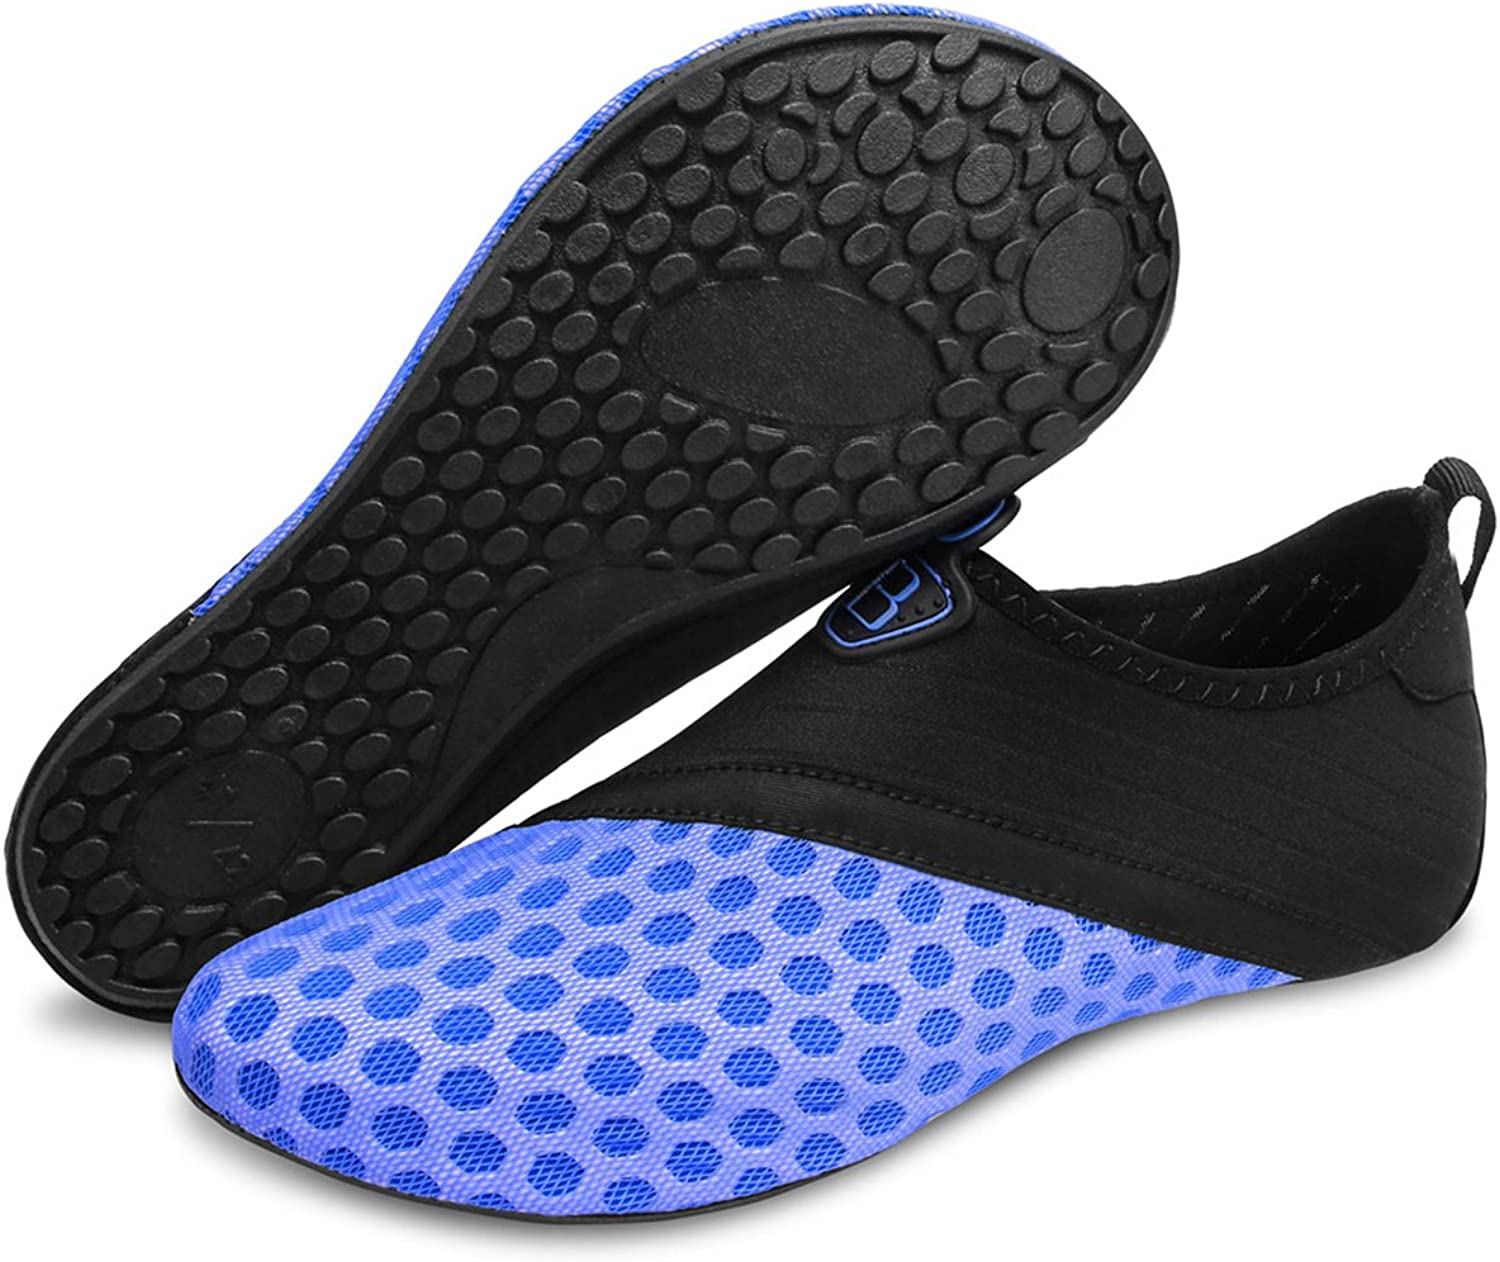 Barerun Barefoot Quick-Dry Water Sports shoes Aqua Socks Swim Beach Pool Surf Yoga Women Men